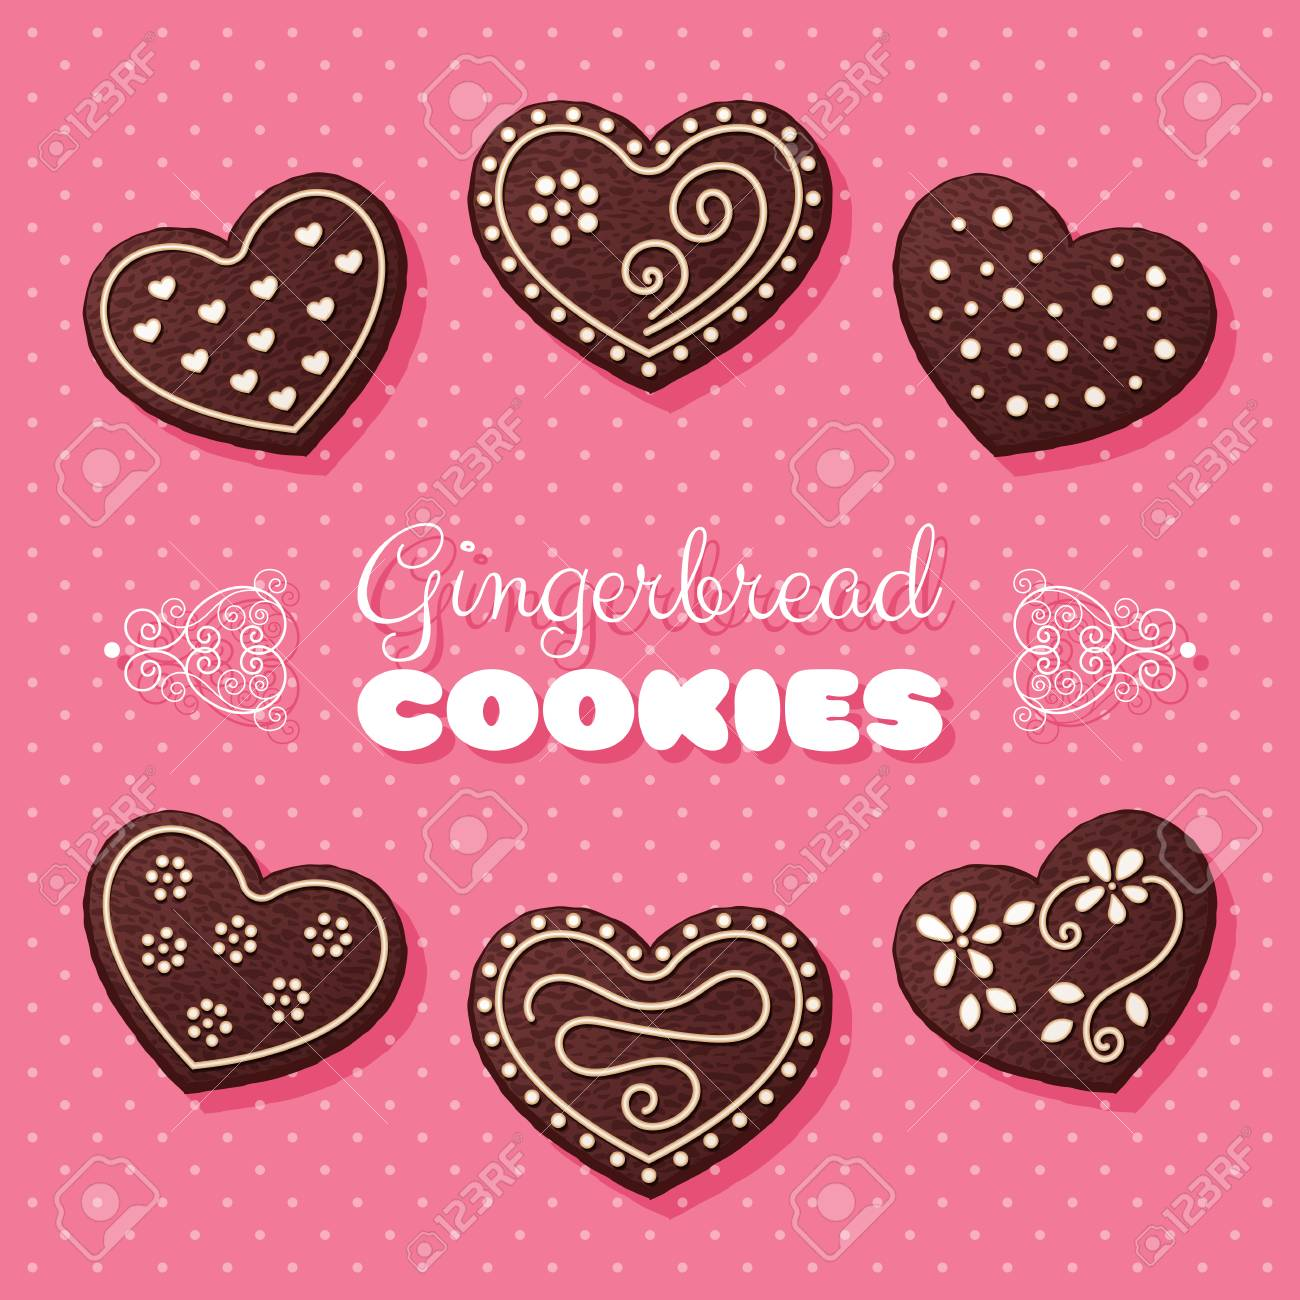 Gingerbread Heart Shaped Cookies Vector Illustration In Retro